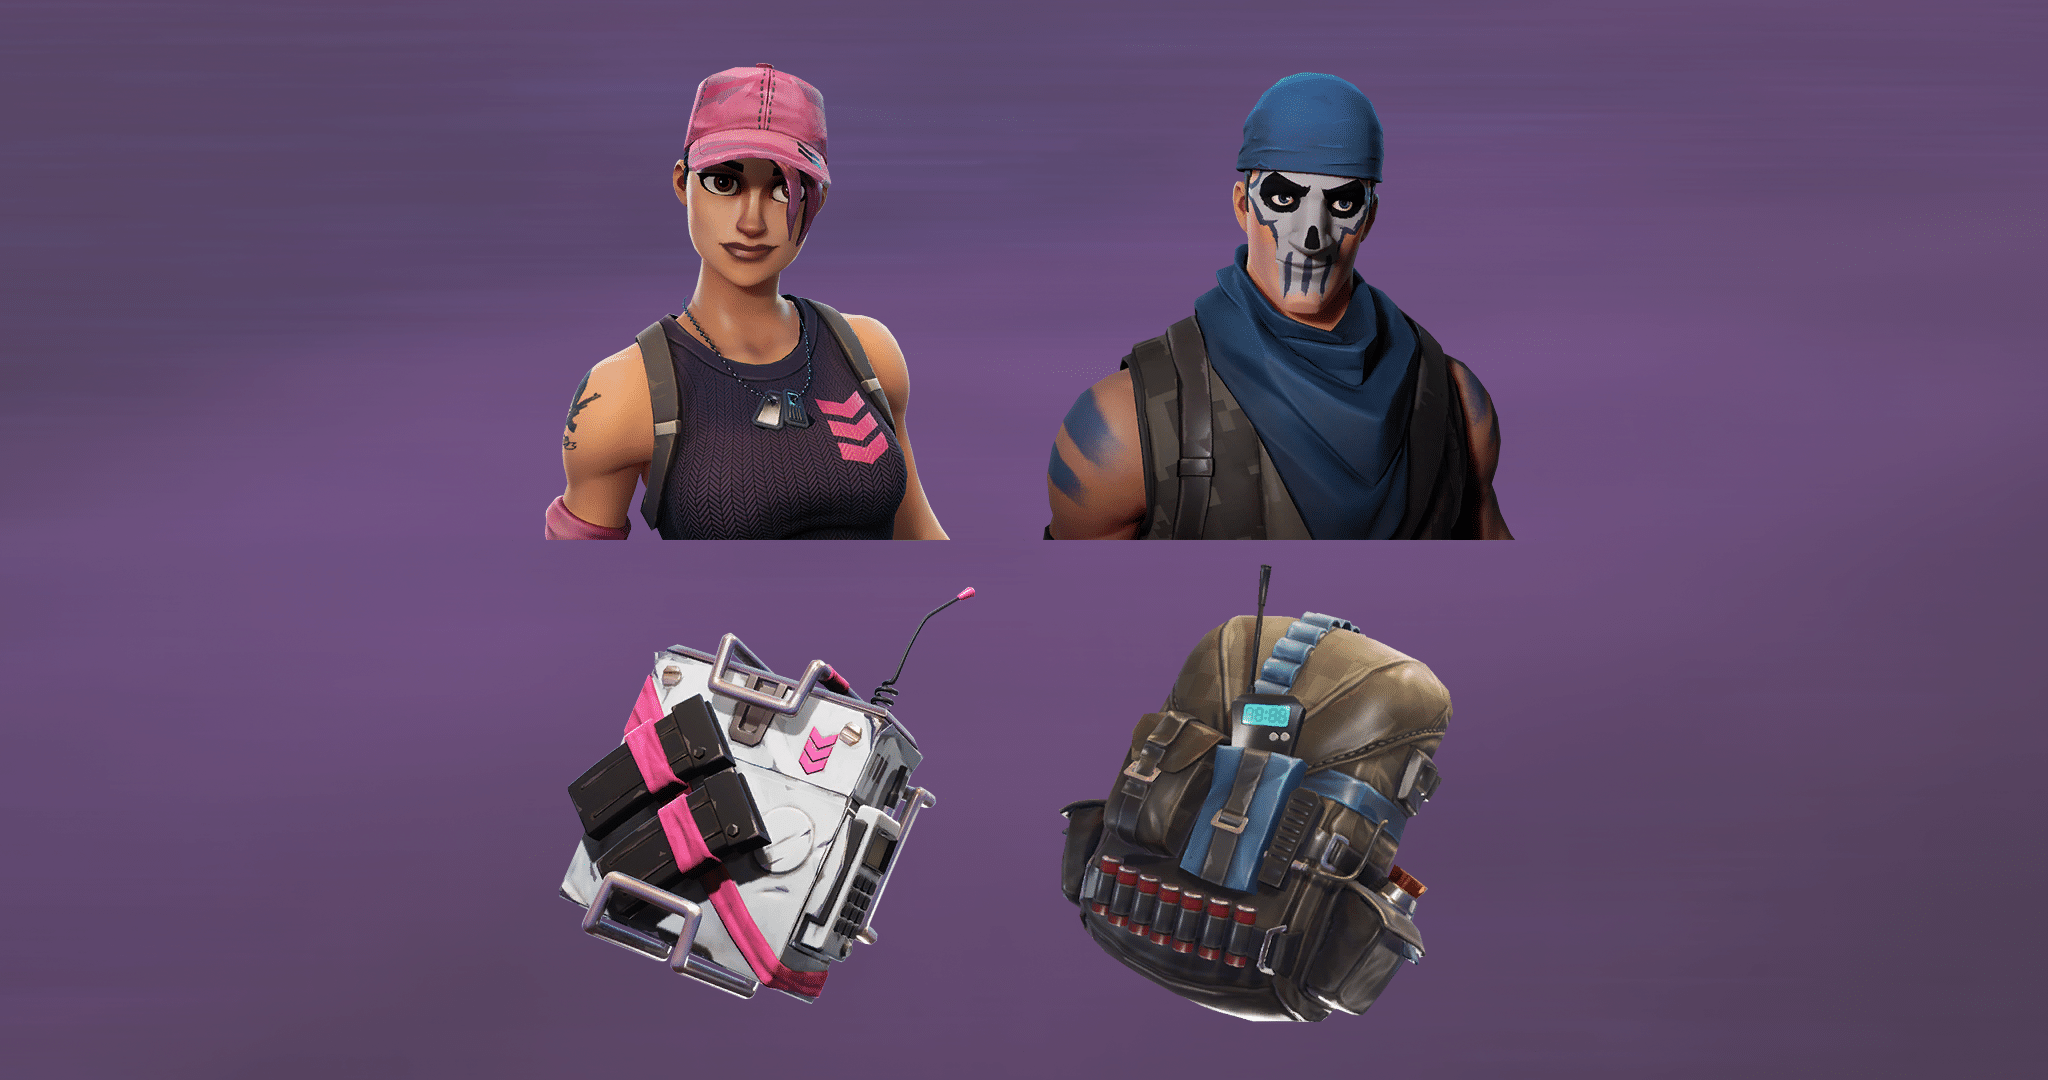 New skins are potentially intended for Founders